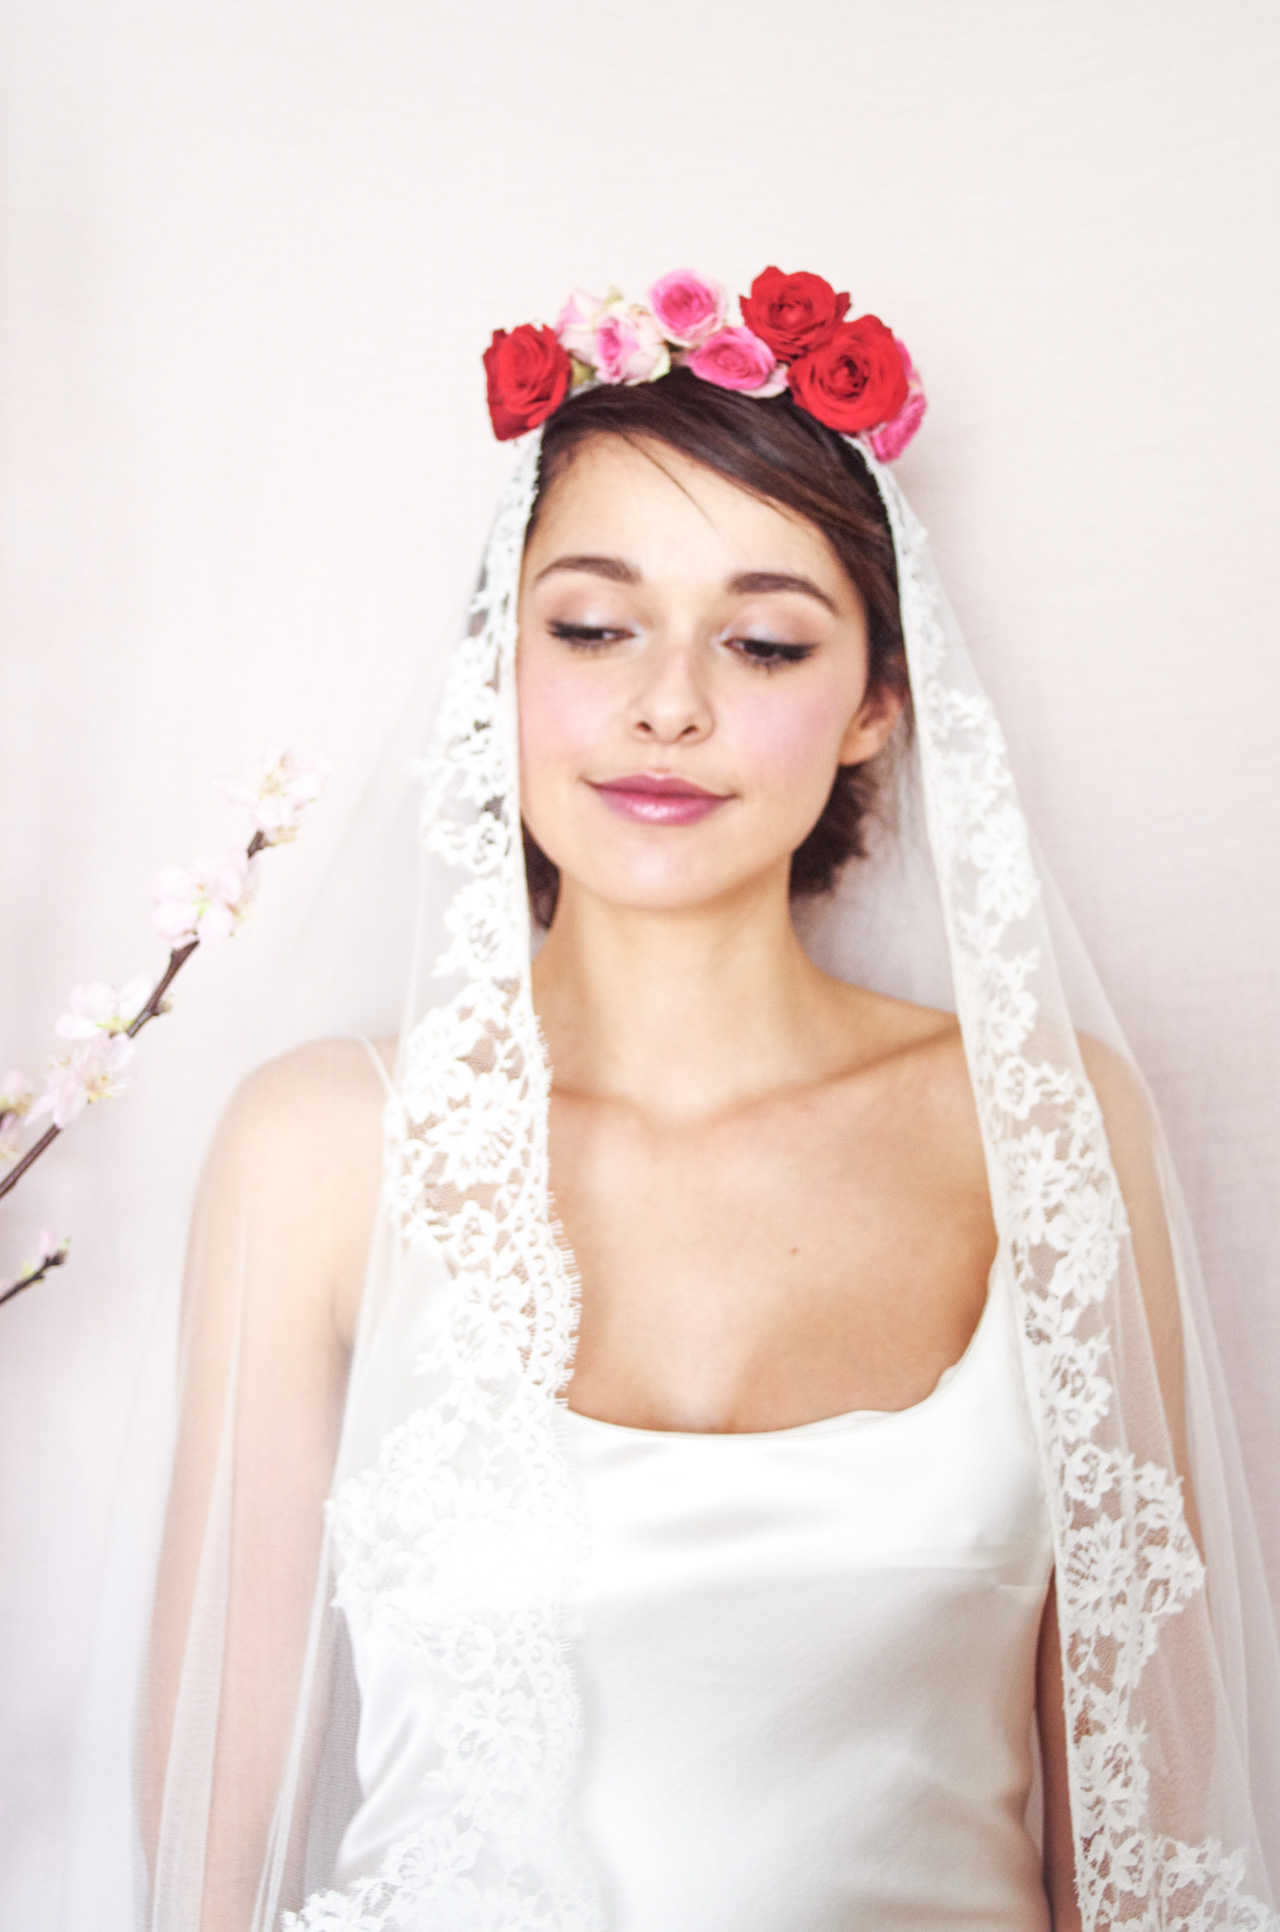 Shooting mariage blogueuse mode - french fashion blog weeding photography - Maquillage mariage nude rosé - Nude make up - flowers crown